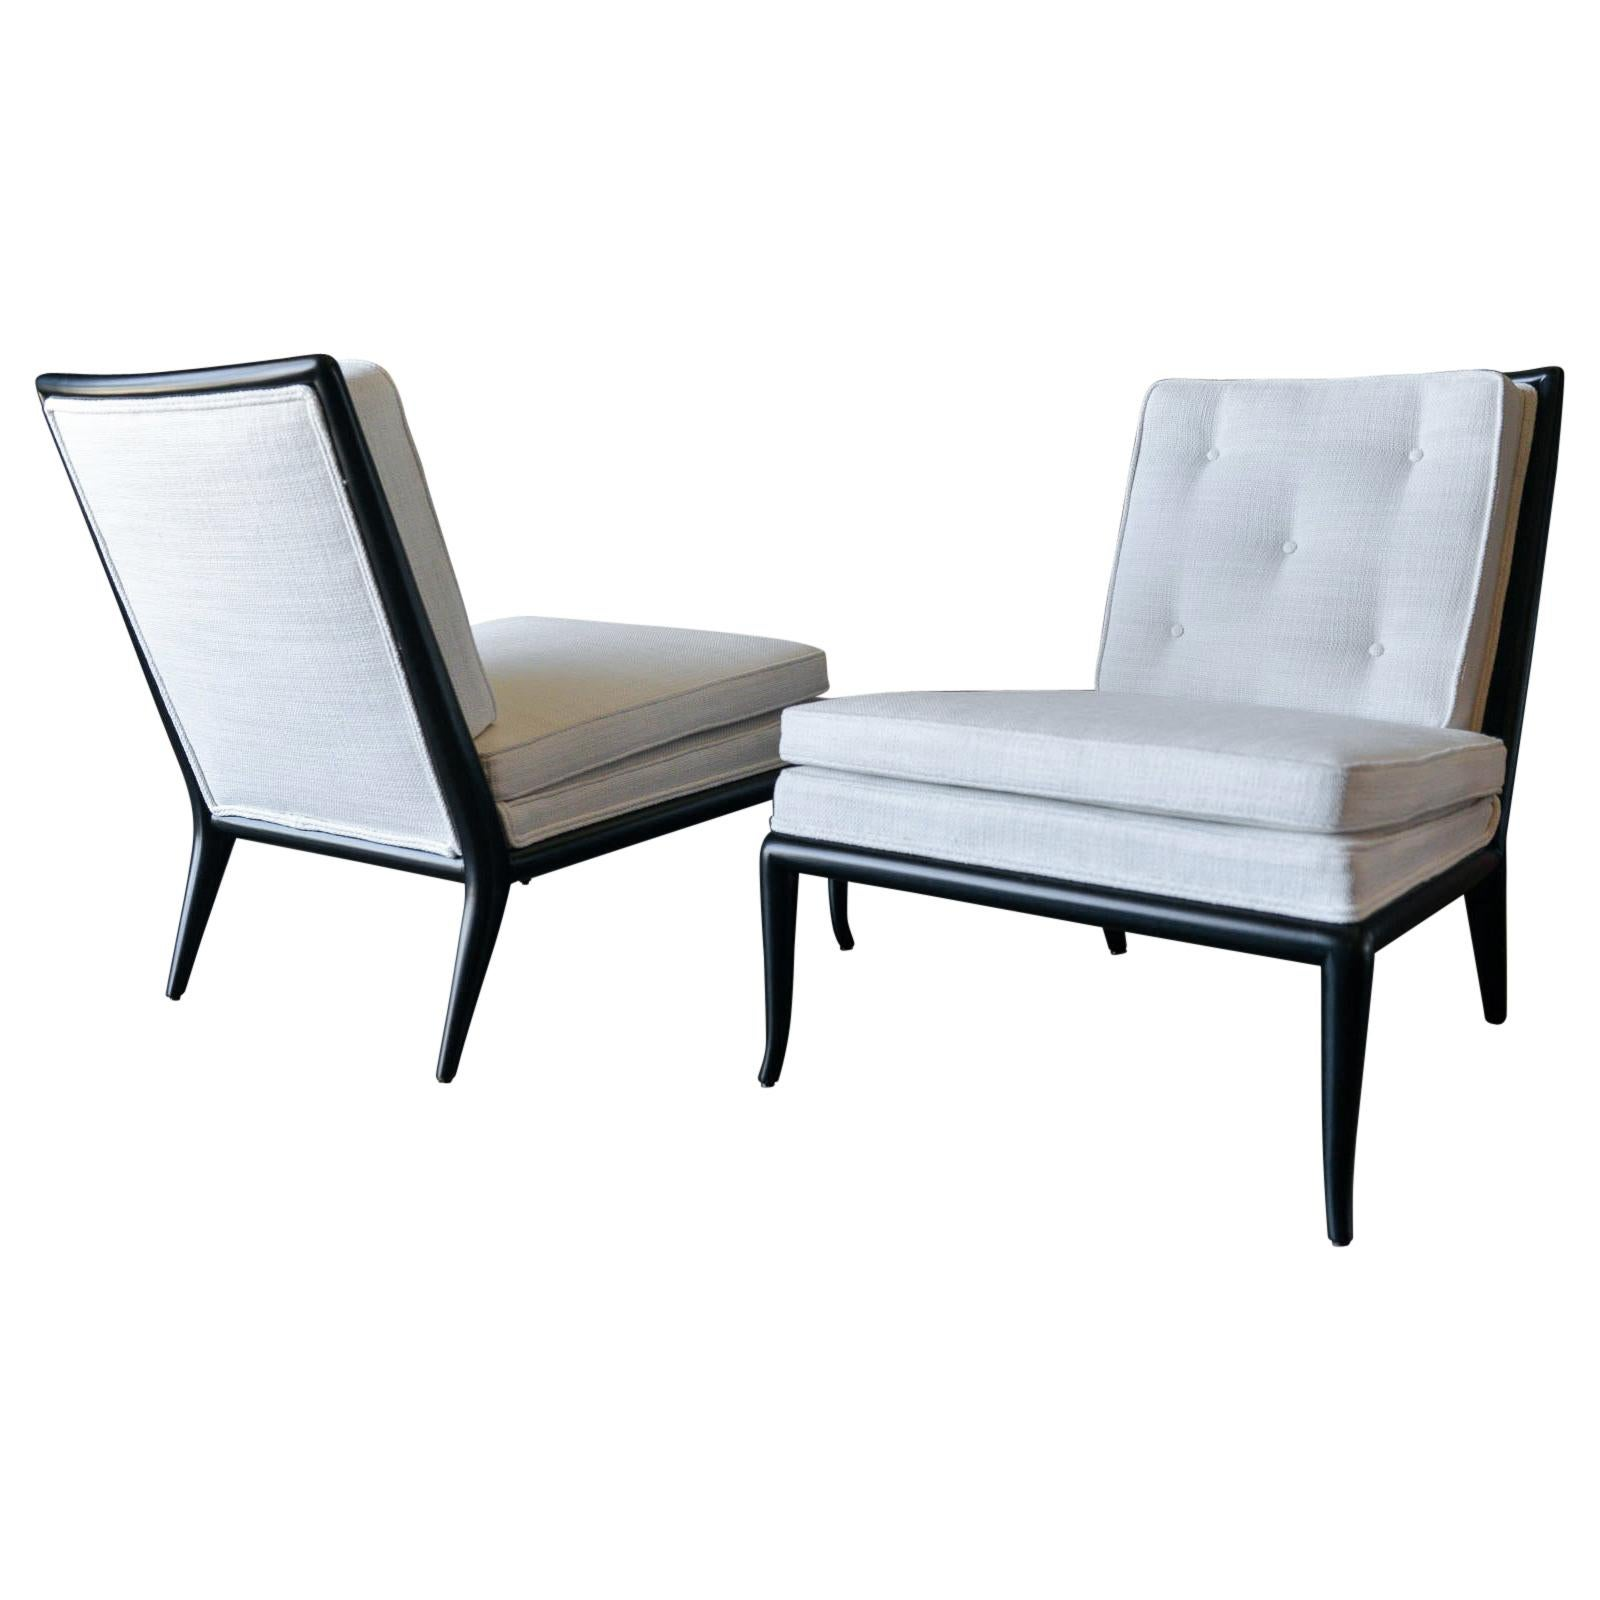 Pair of T.H. Robsjohn-Gibbings Slipper Chairs, Model WMB, 1955